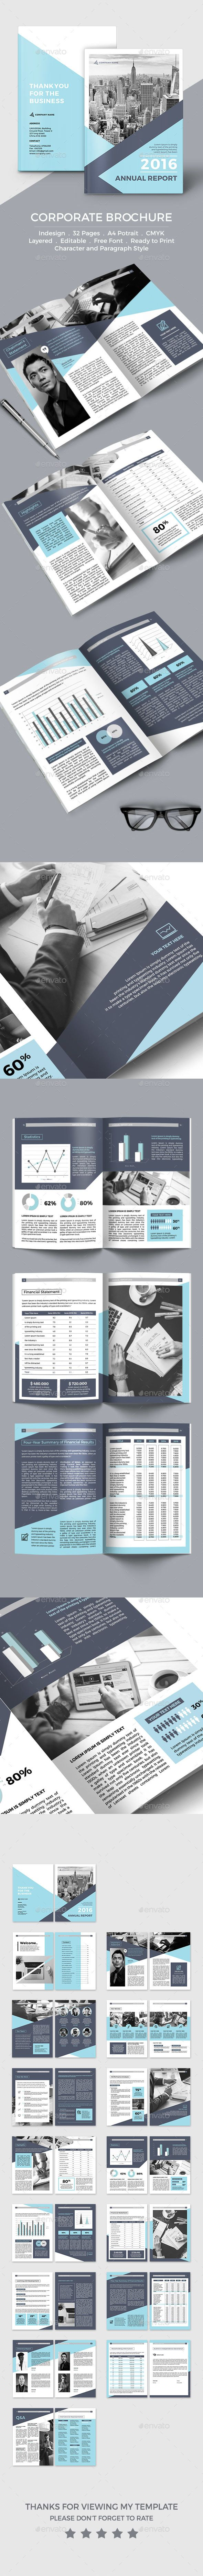 Annual Report Template InDesign INDD. Download here: https://graphicriver.net/item/annual-report/17414819?ref=ksioks